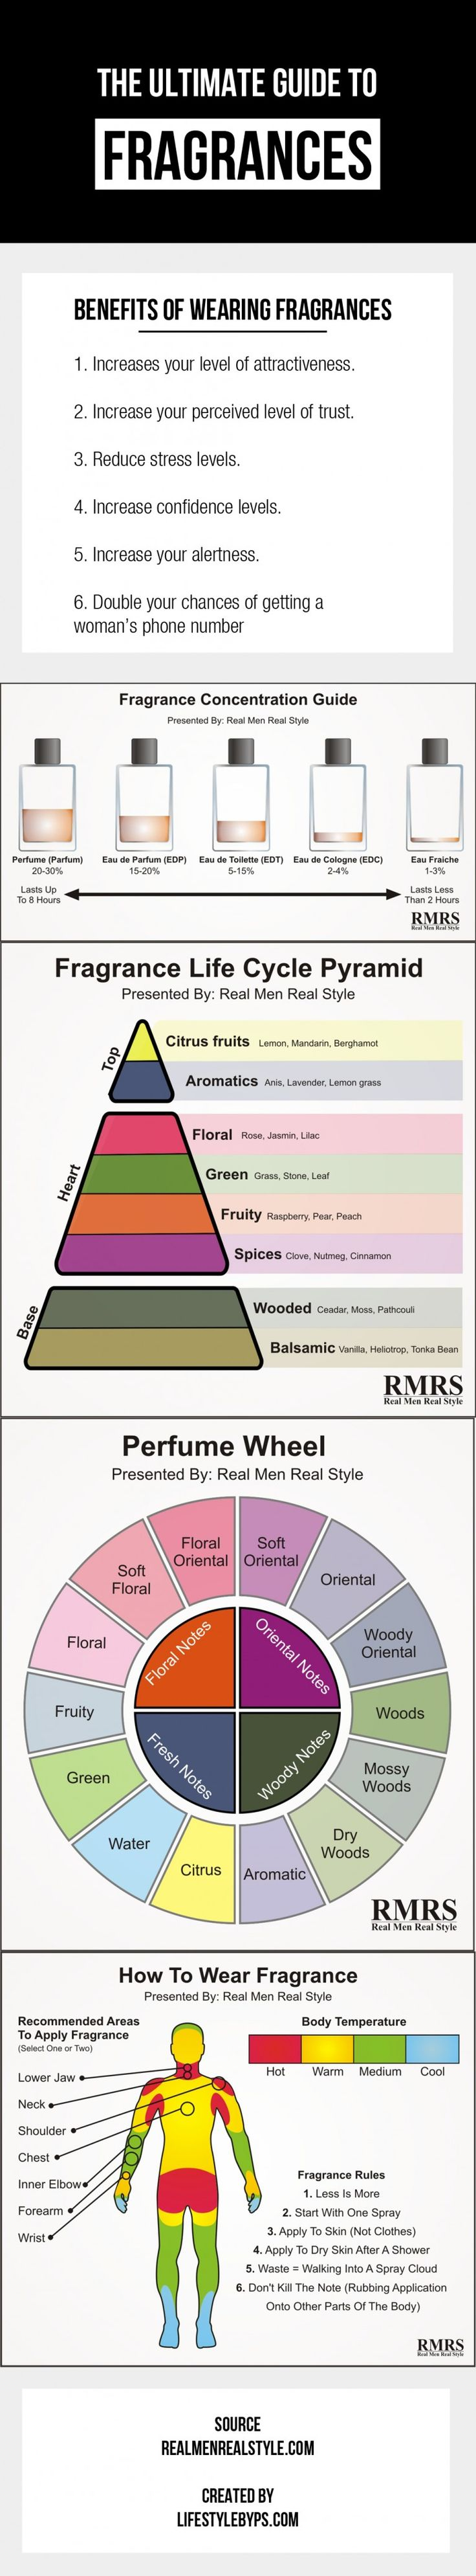 mywebroom blog lifestylebyps male fashion fragrance style infographic